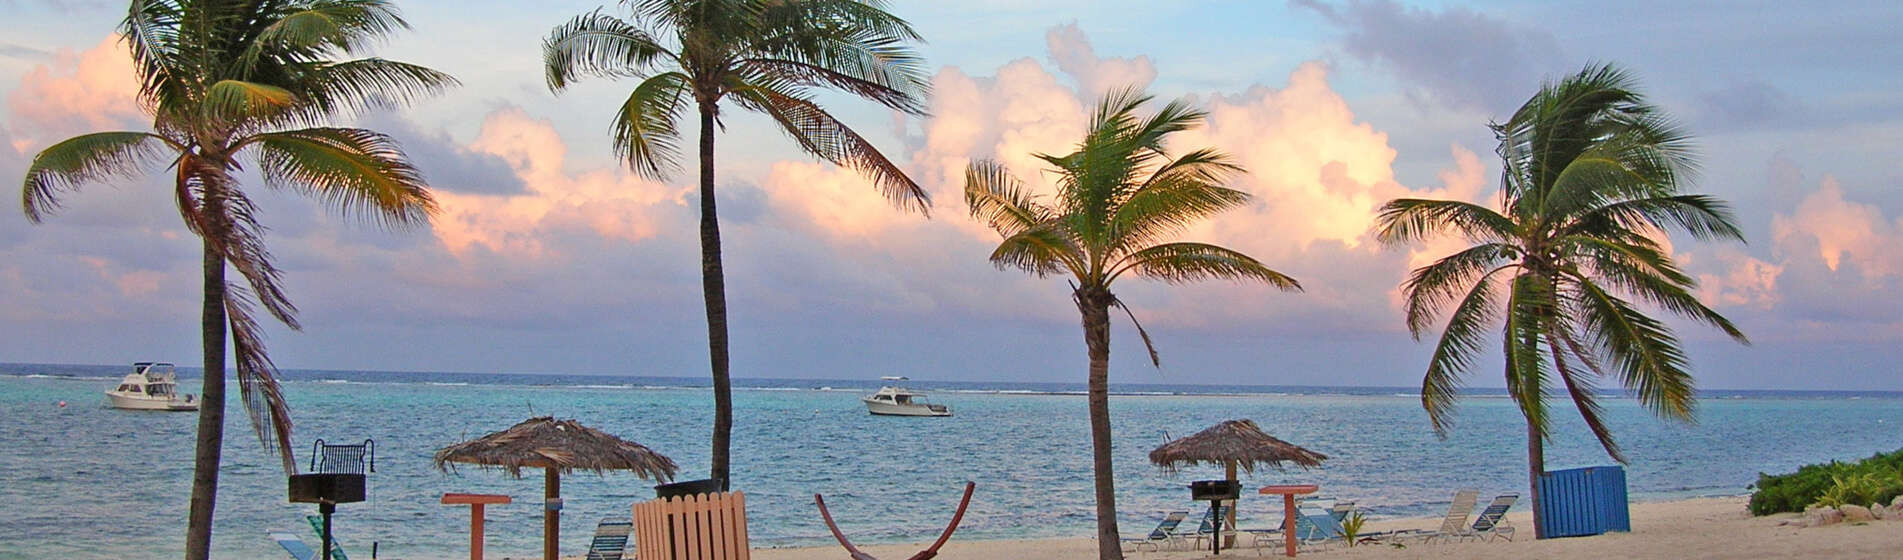 Banking in the Cayman Islands